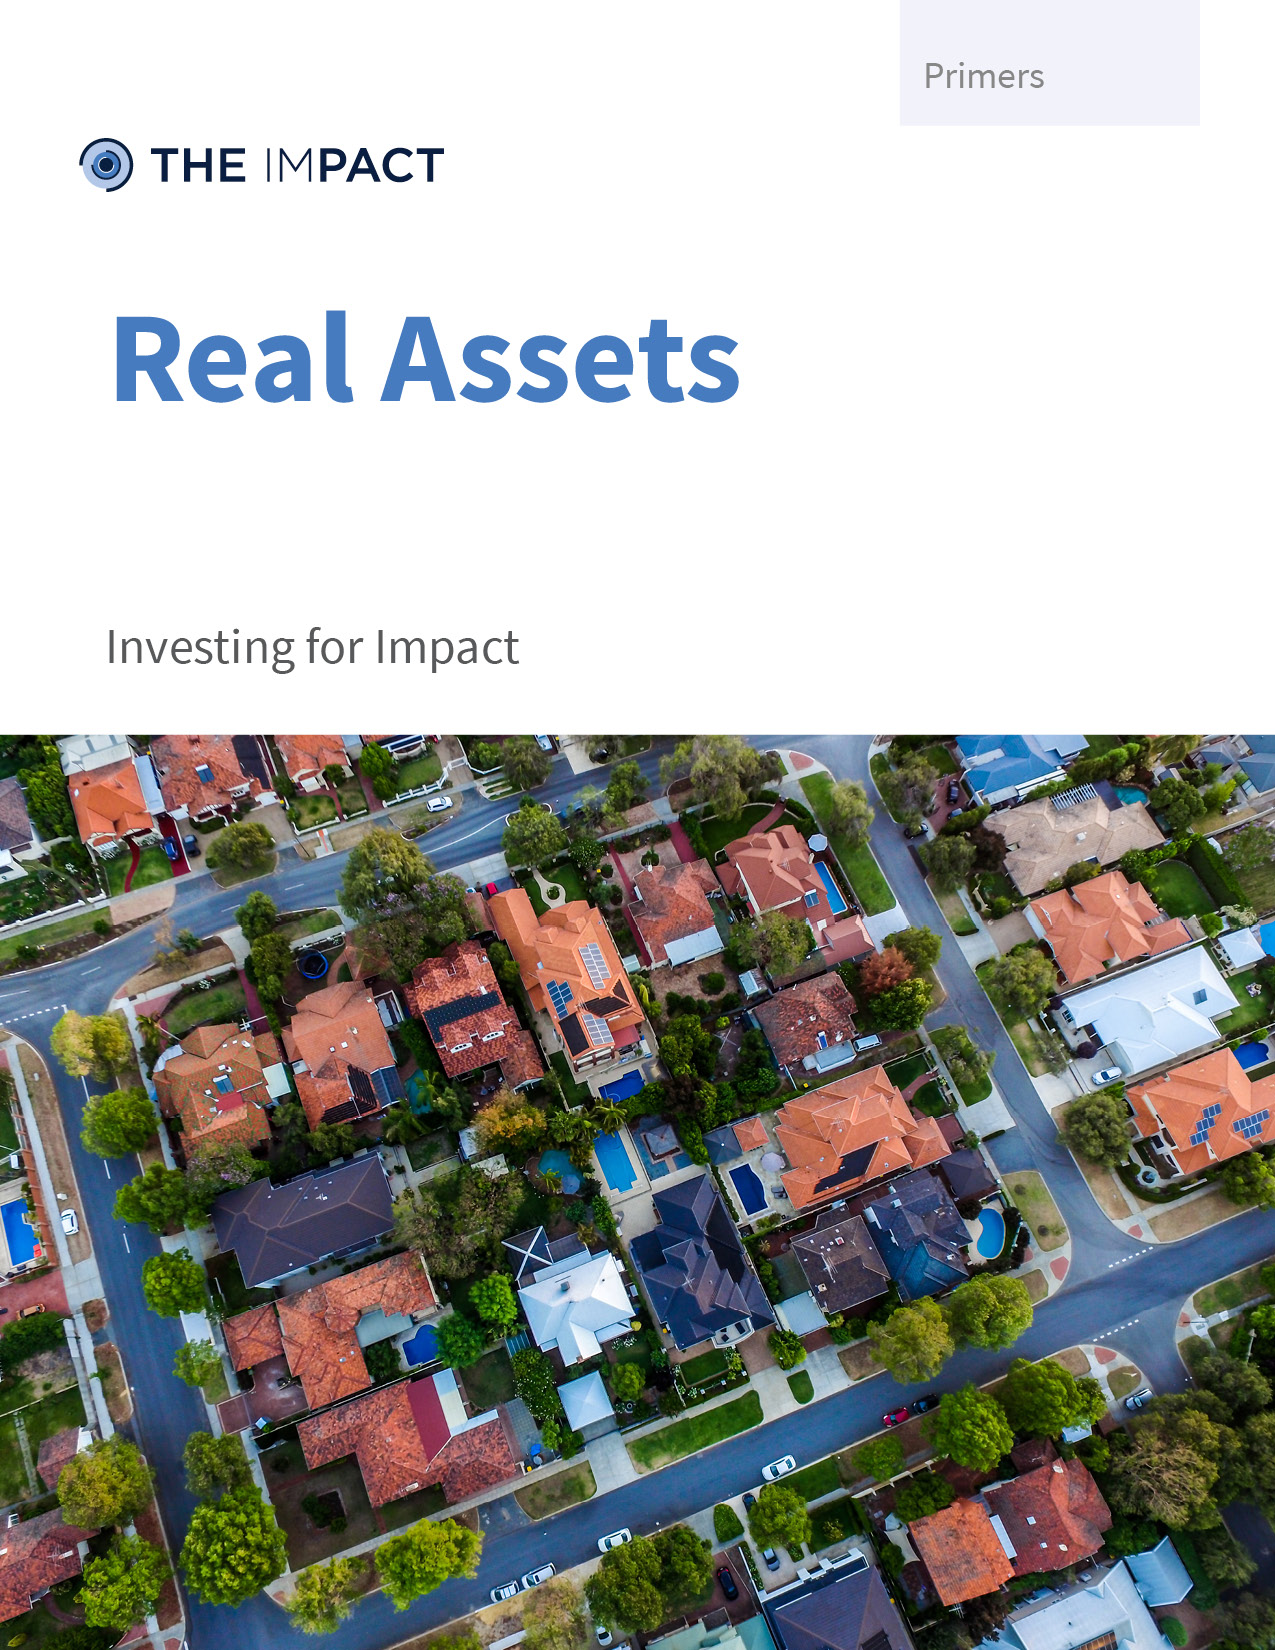 Real Assets. A primer by The ImPact.